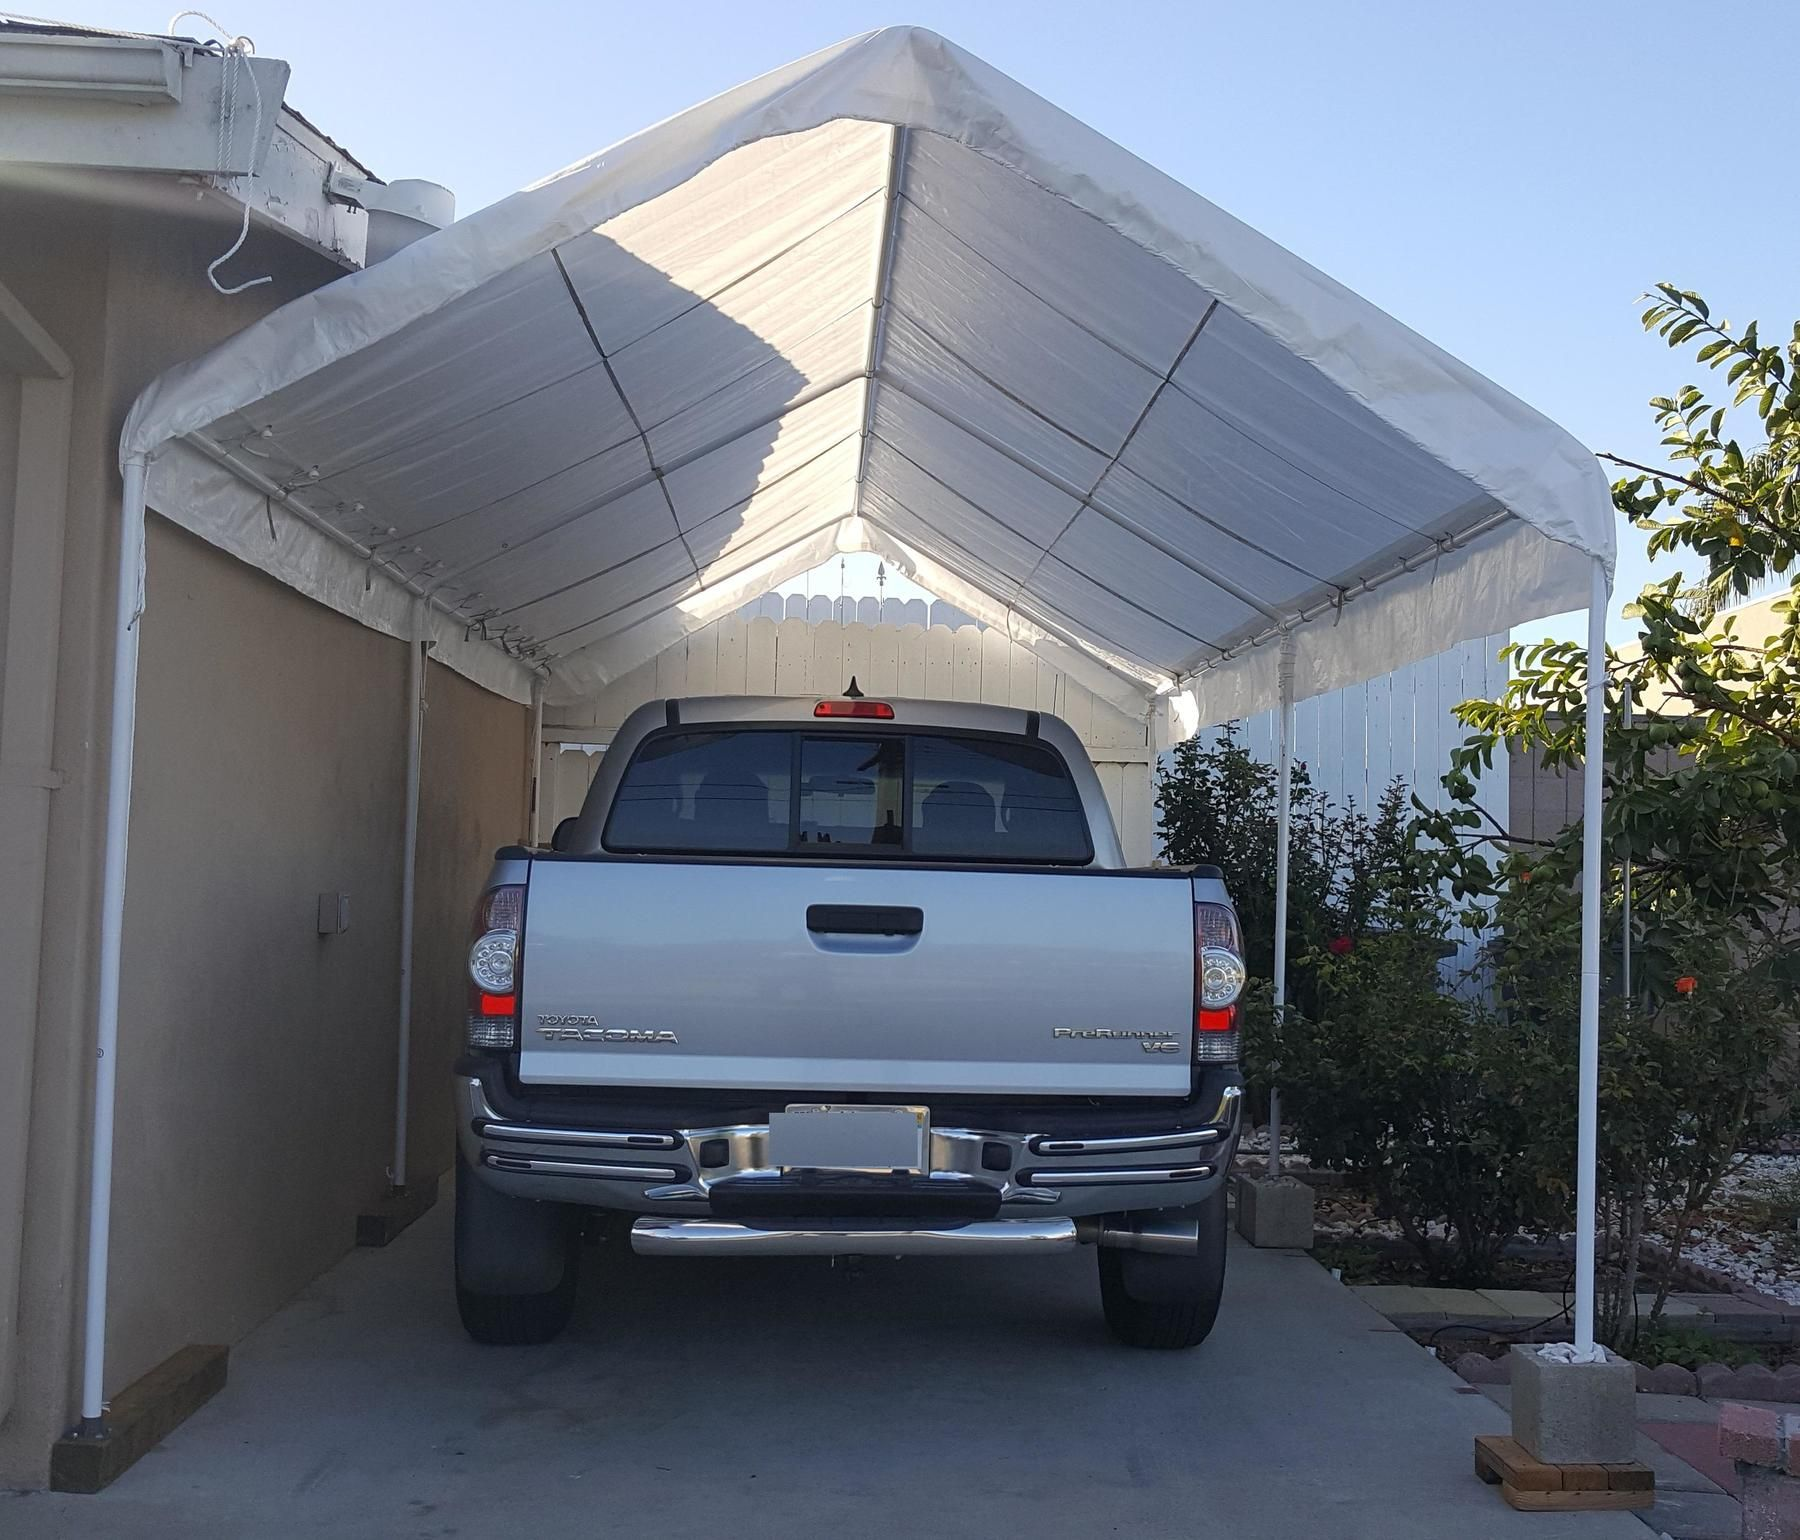 10 Ft. x 20 Ft. Portable Car Canopy in 2020 Car canopy